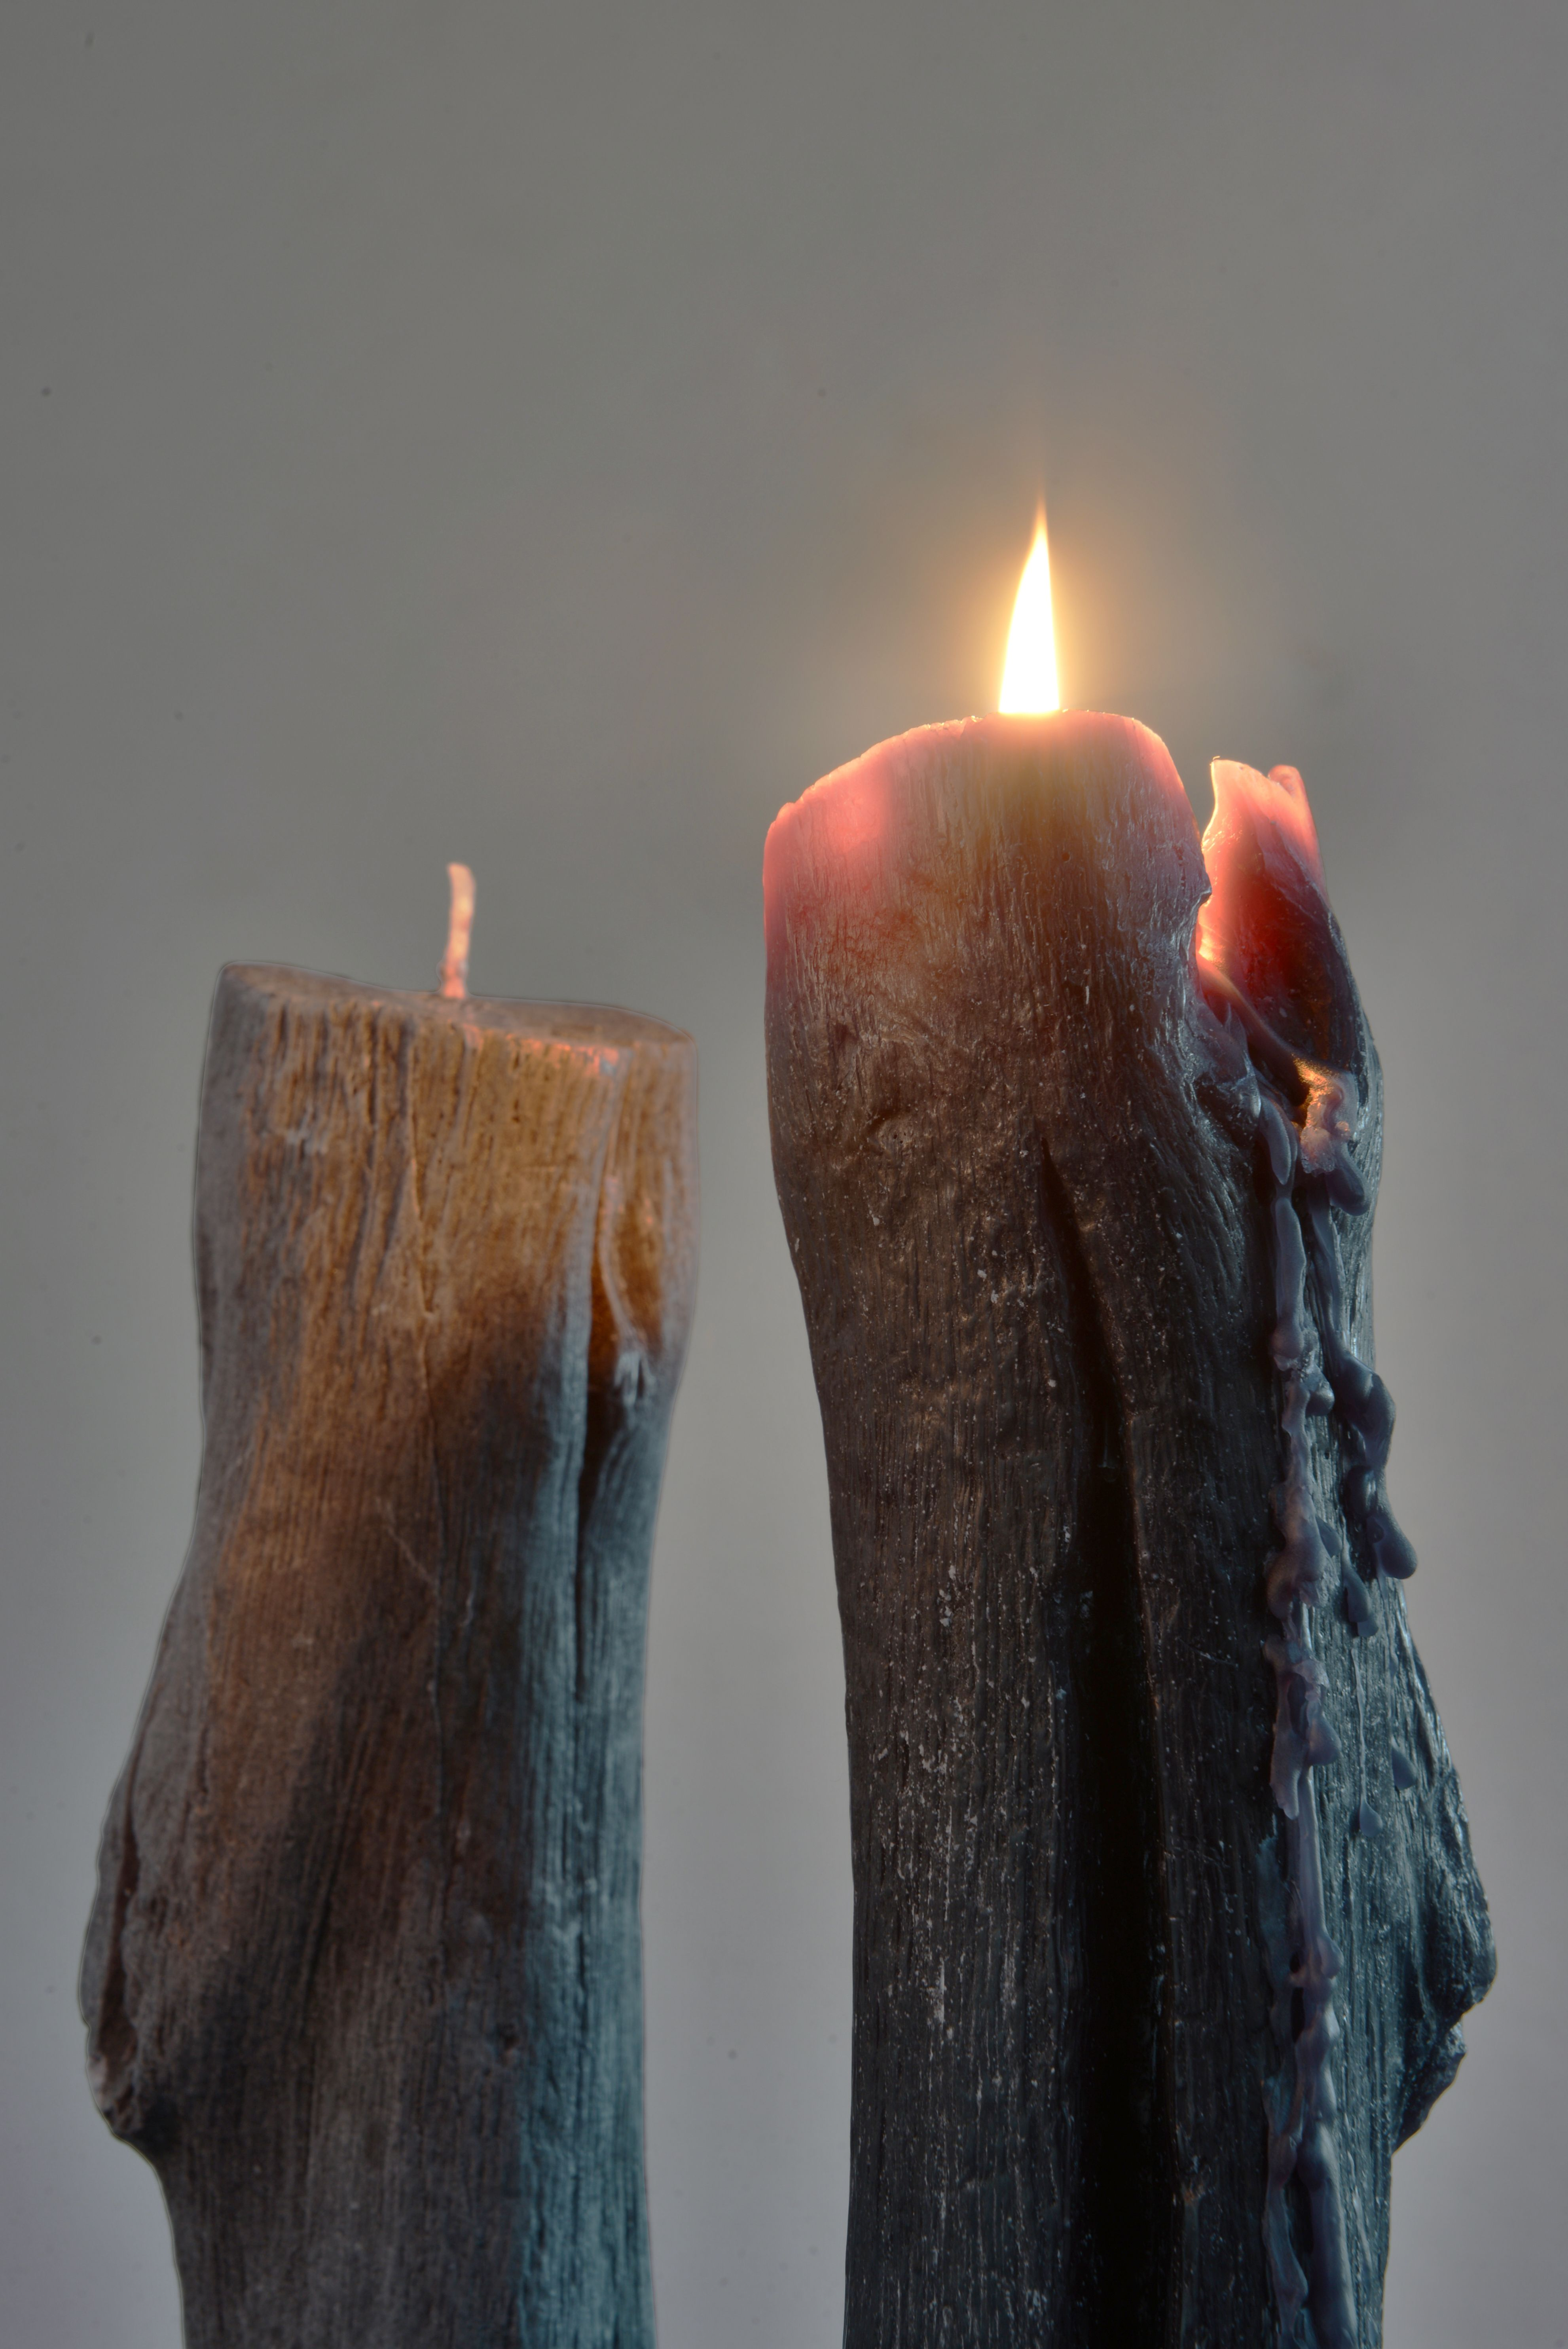 Using plant wax (palm oil), the candle is ecofriendly and